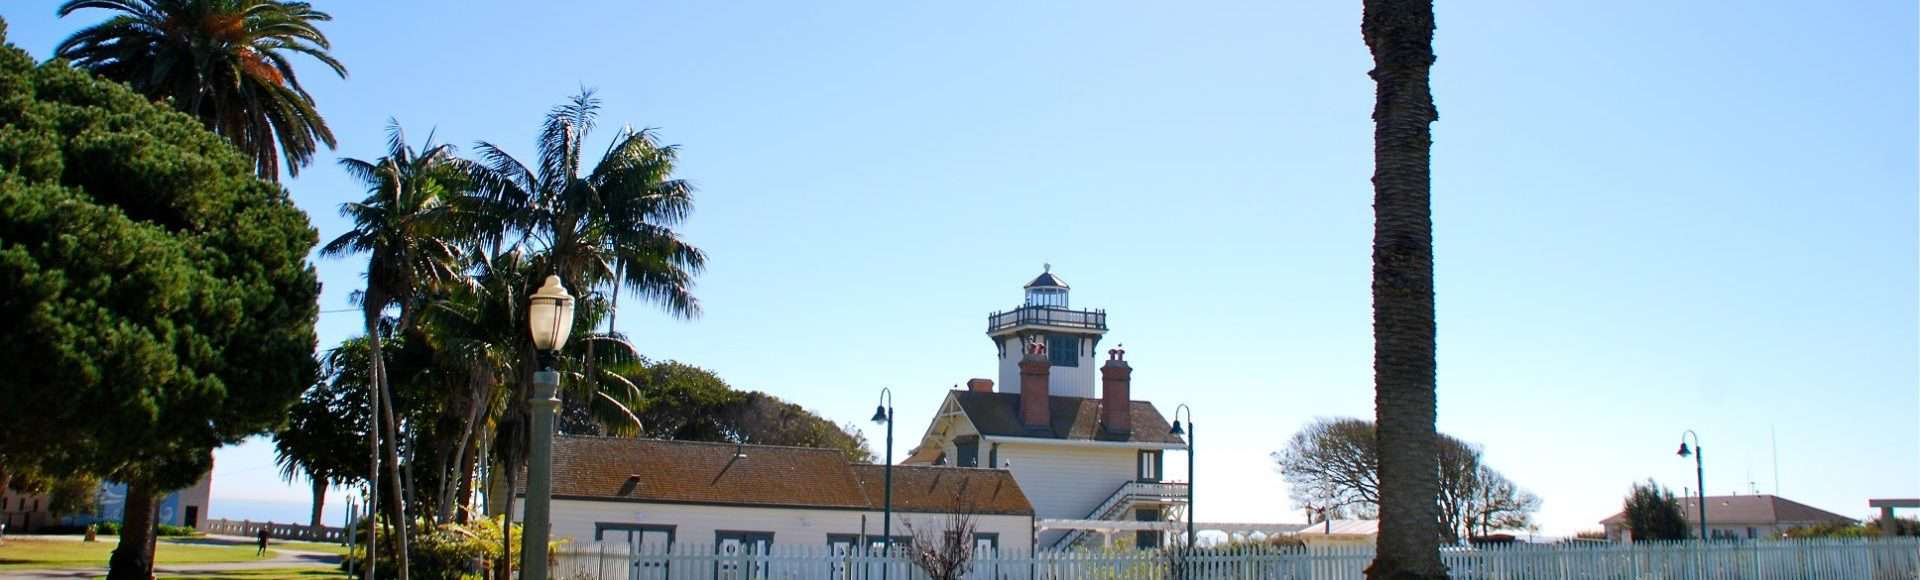 Sp Lighthouse copy